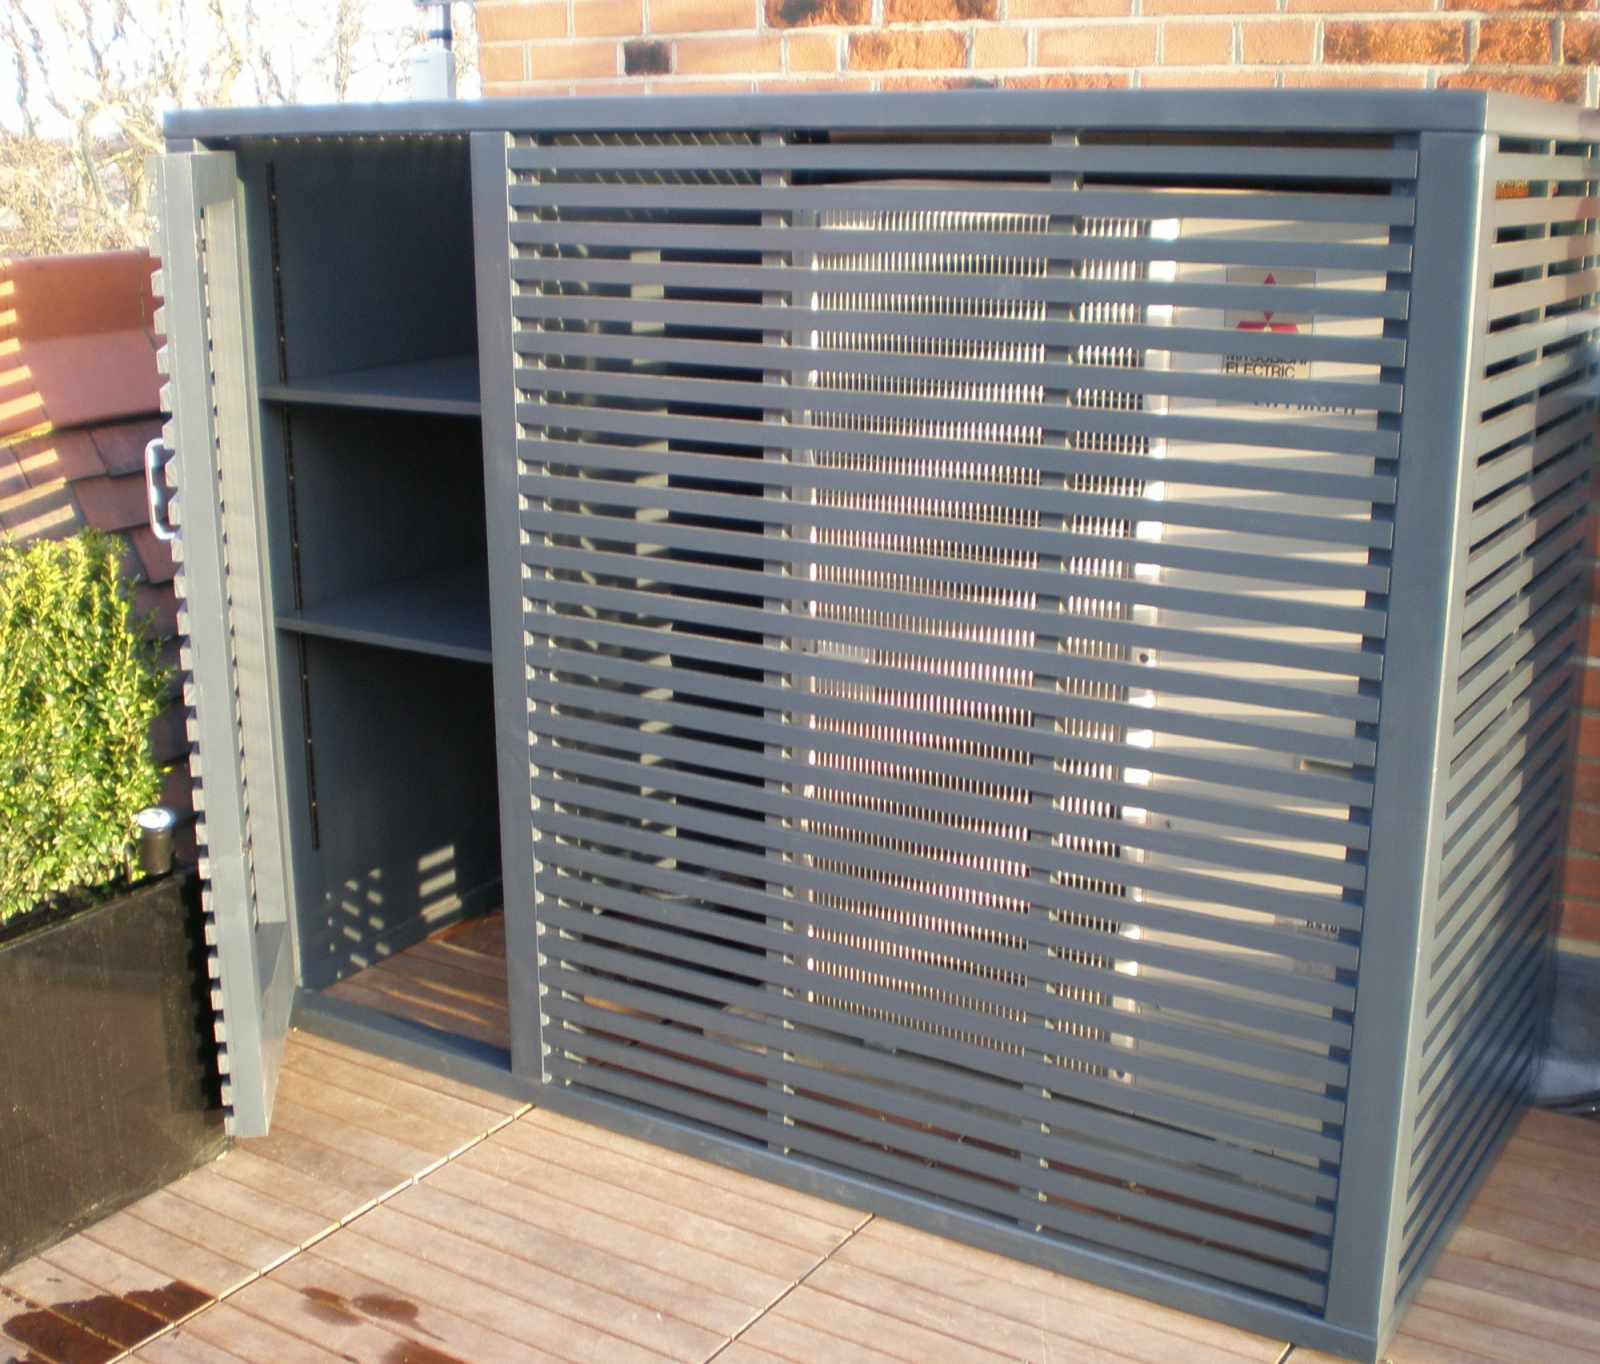 Air Conditioning Covers Air Conditioning Covers Essex Uk The Garden Trellis Company